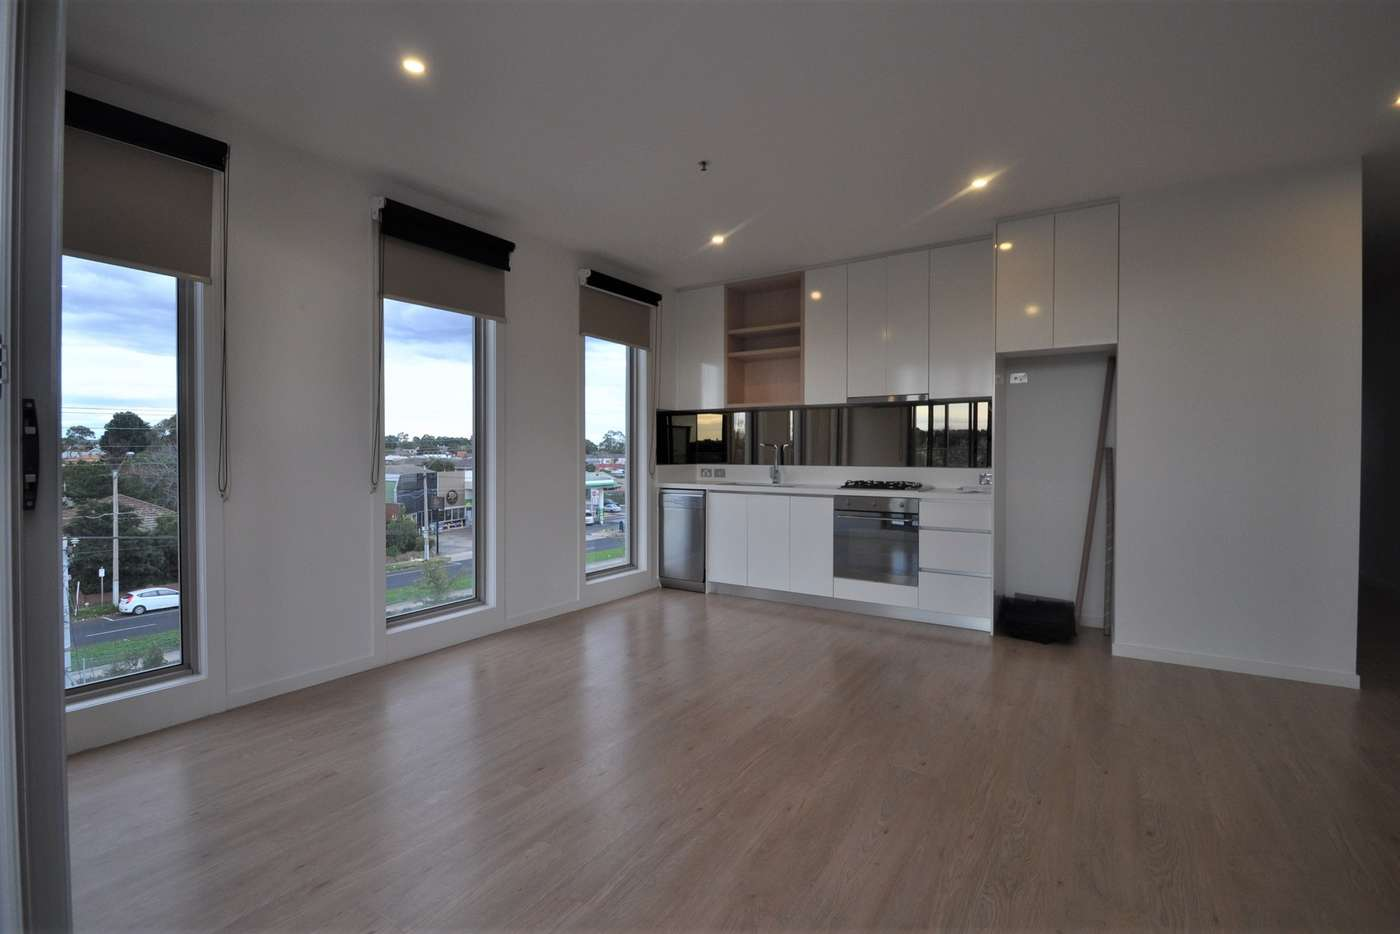 Seventh view of Homely apartment listing, 305/85 Hutton Street, Thornbury VIC 3071